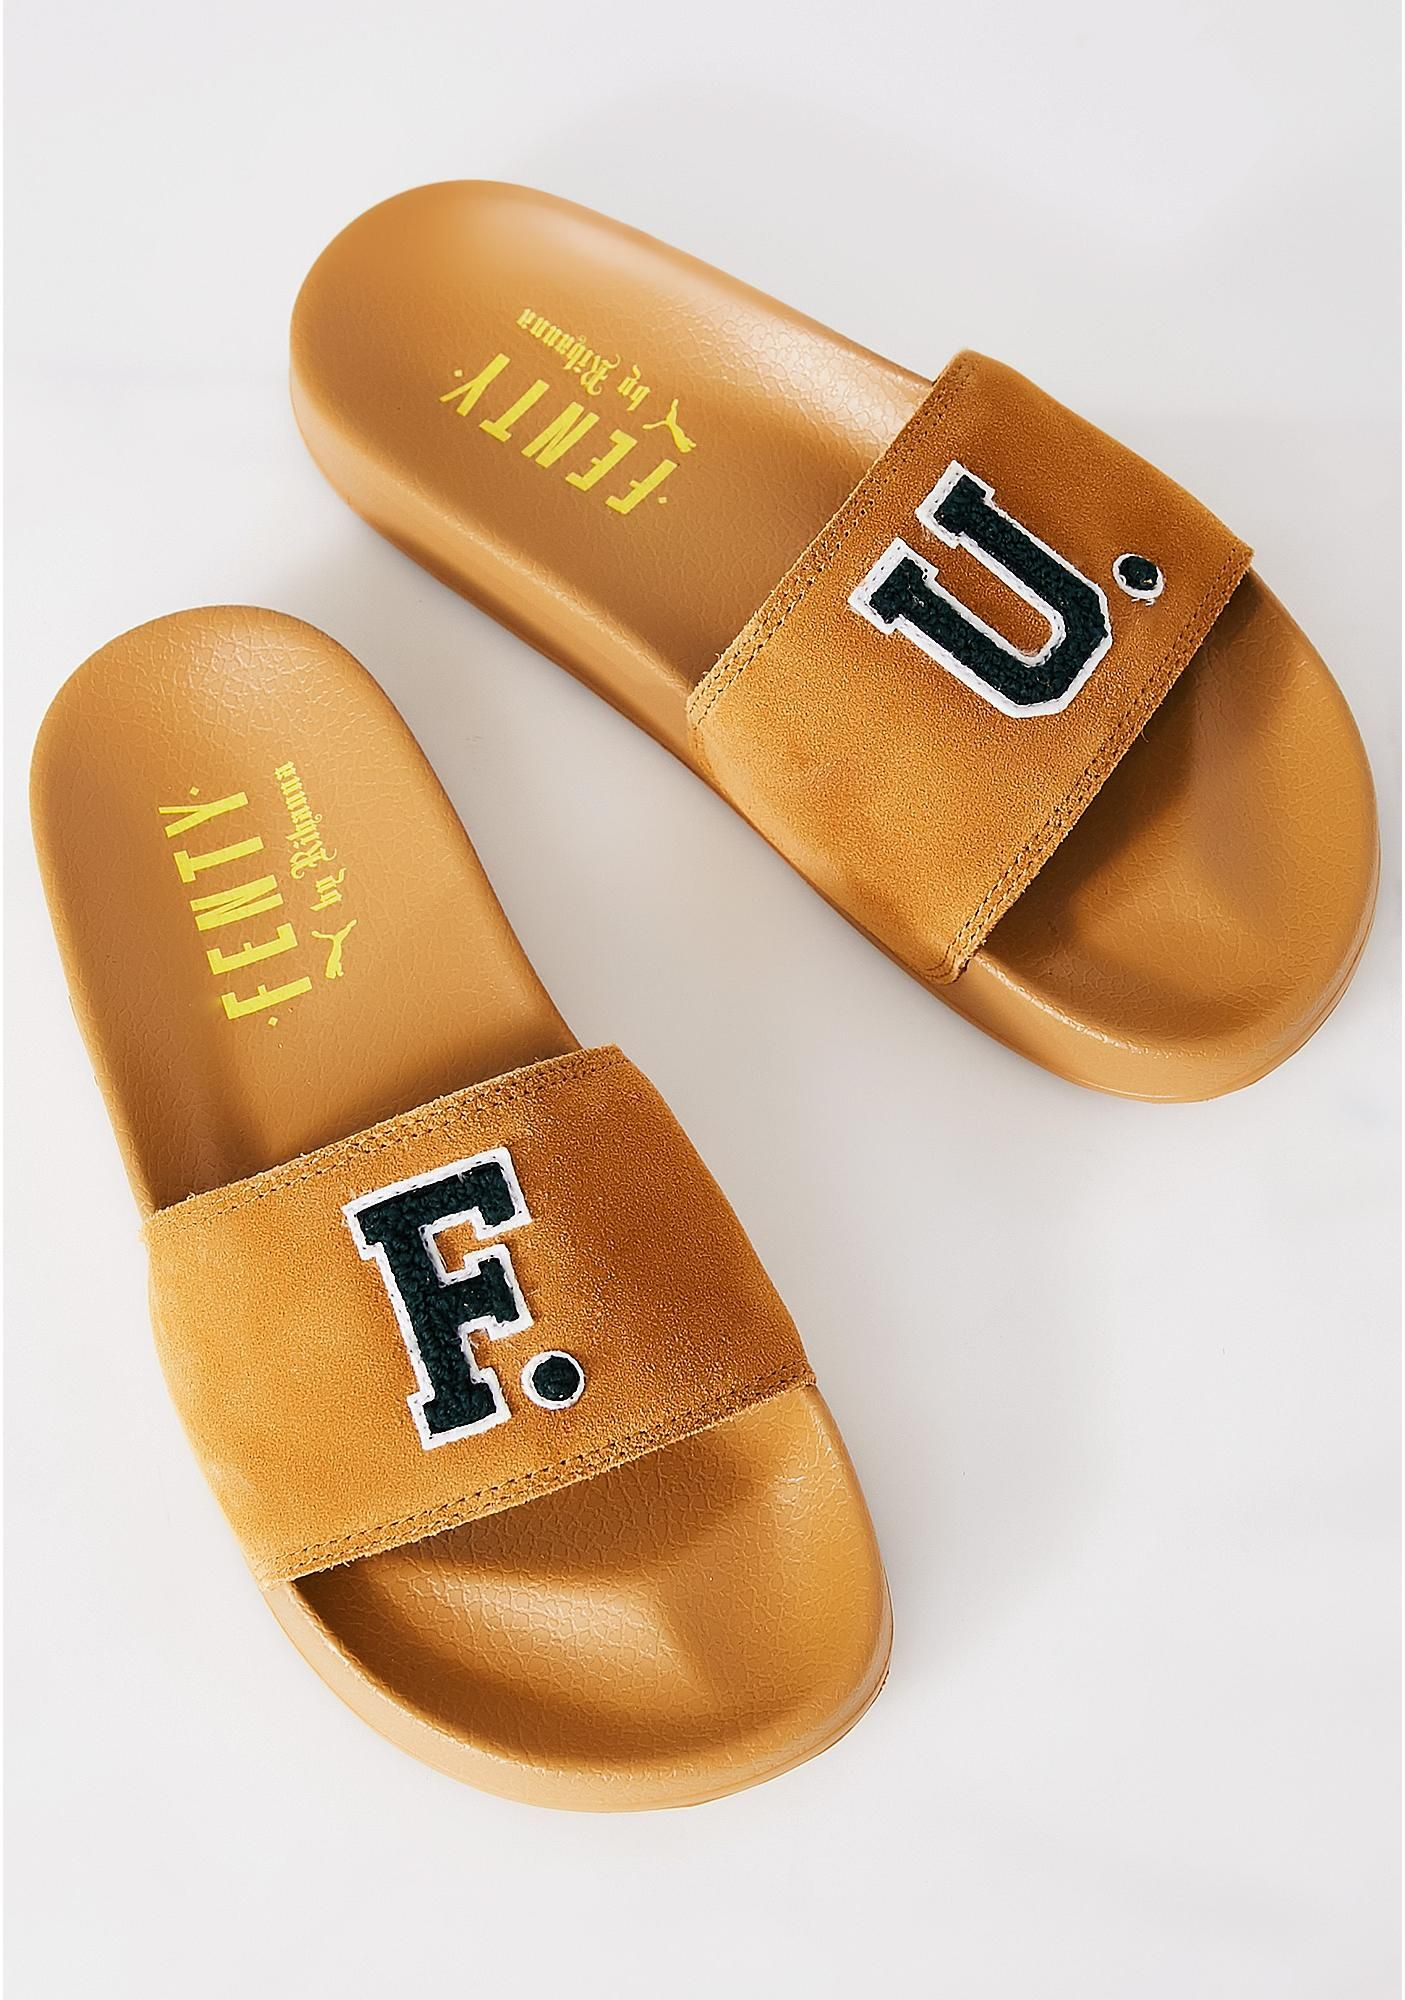 ef600f3fa84d86 PUMA FENTY PUMA By Rihanna Golden Brown Leadcat Fenty FU Slides cuz you  just want to slide right in. These slides have a suede strap featuring F  and U ...